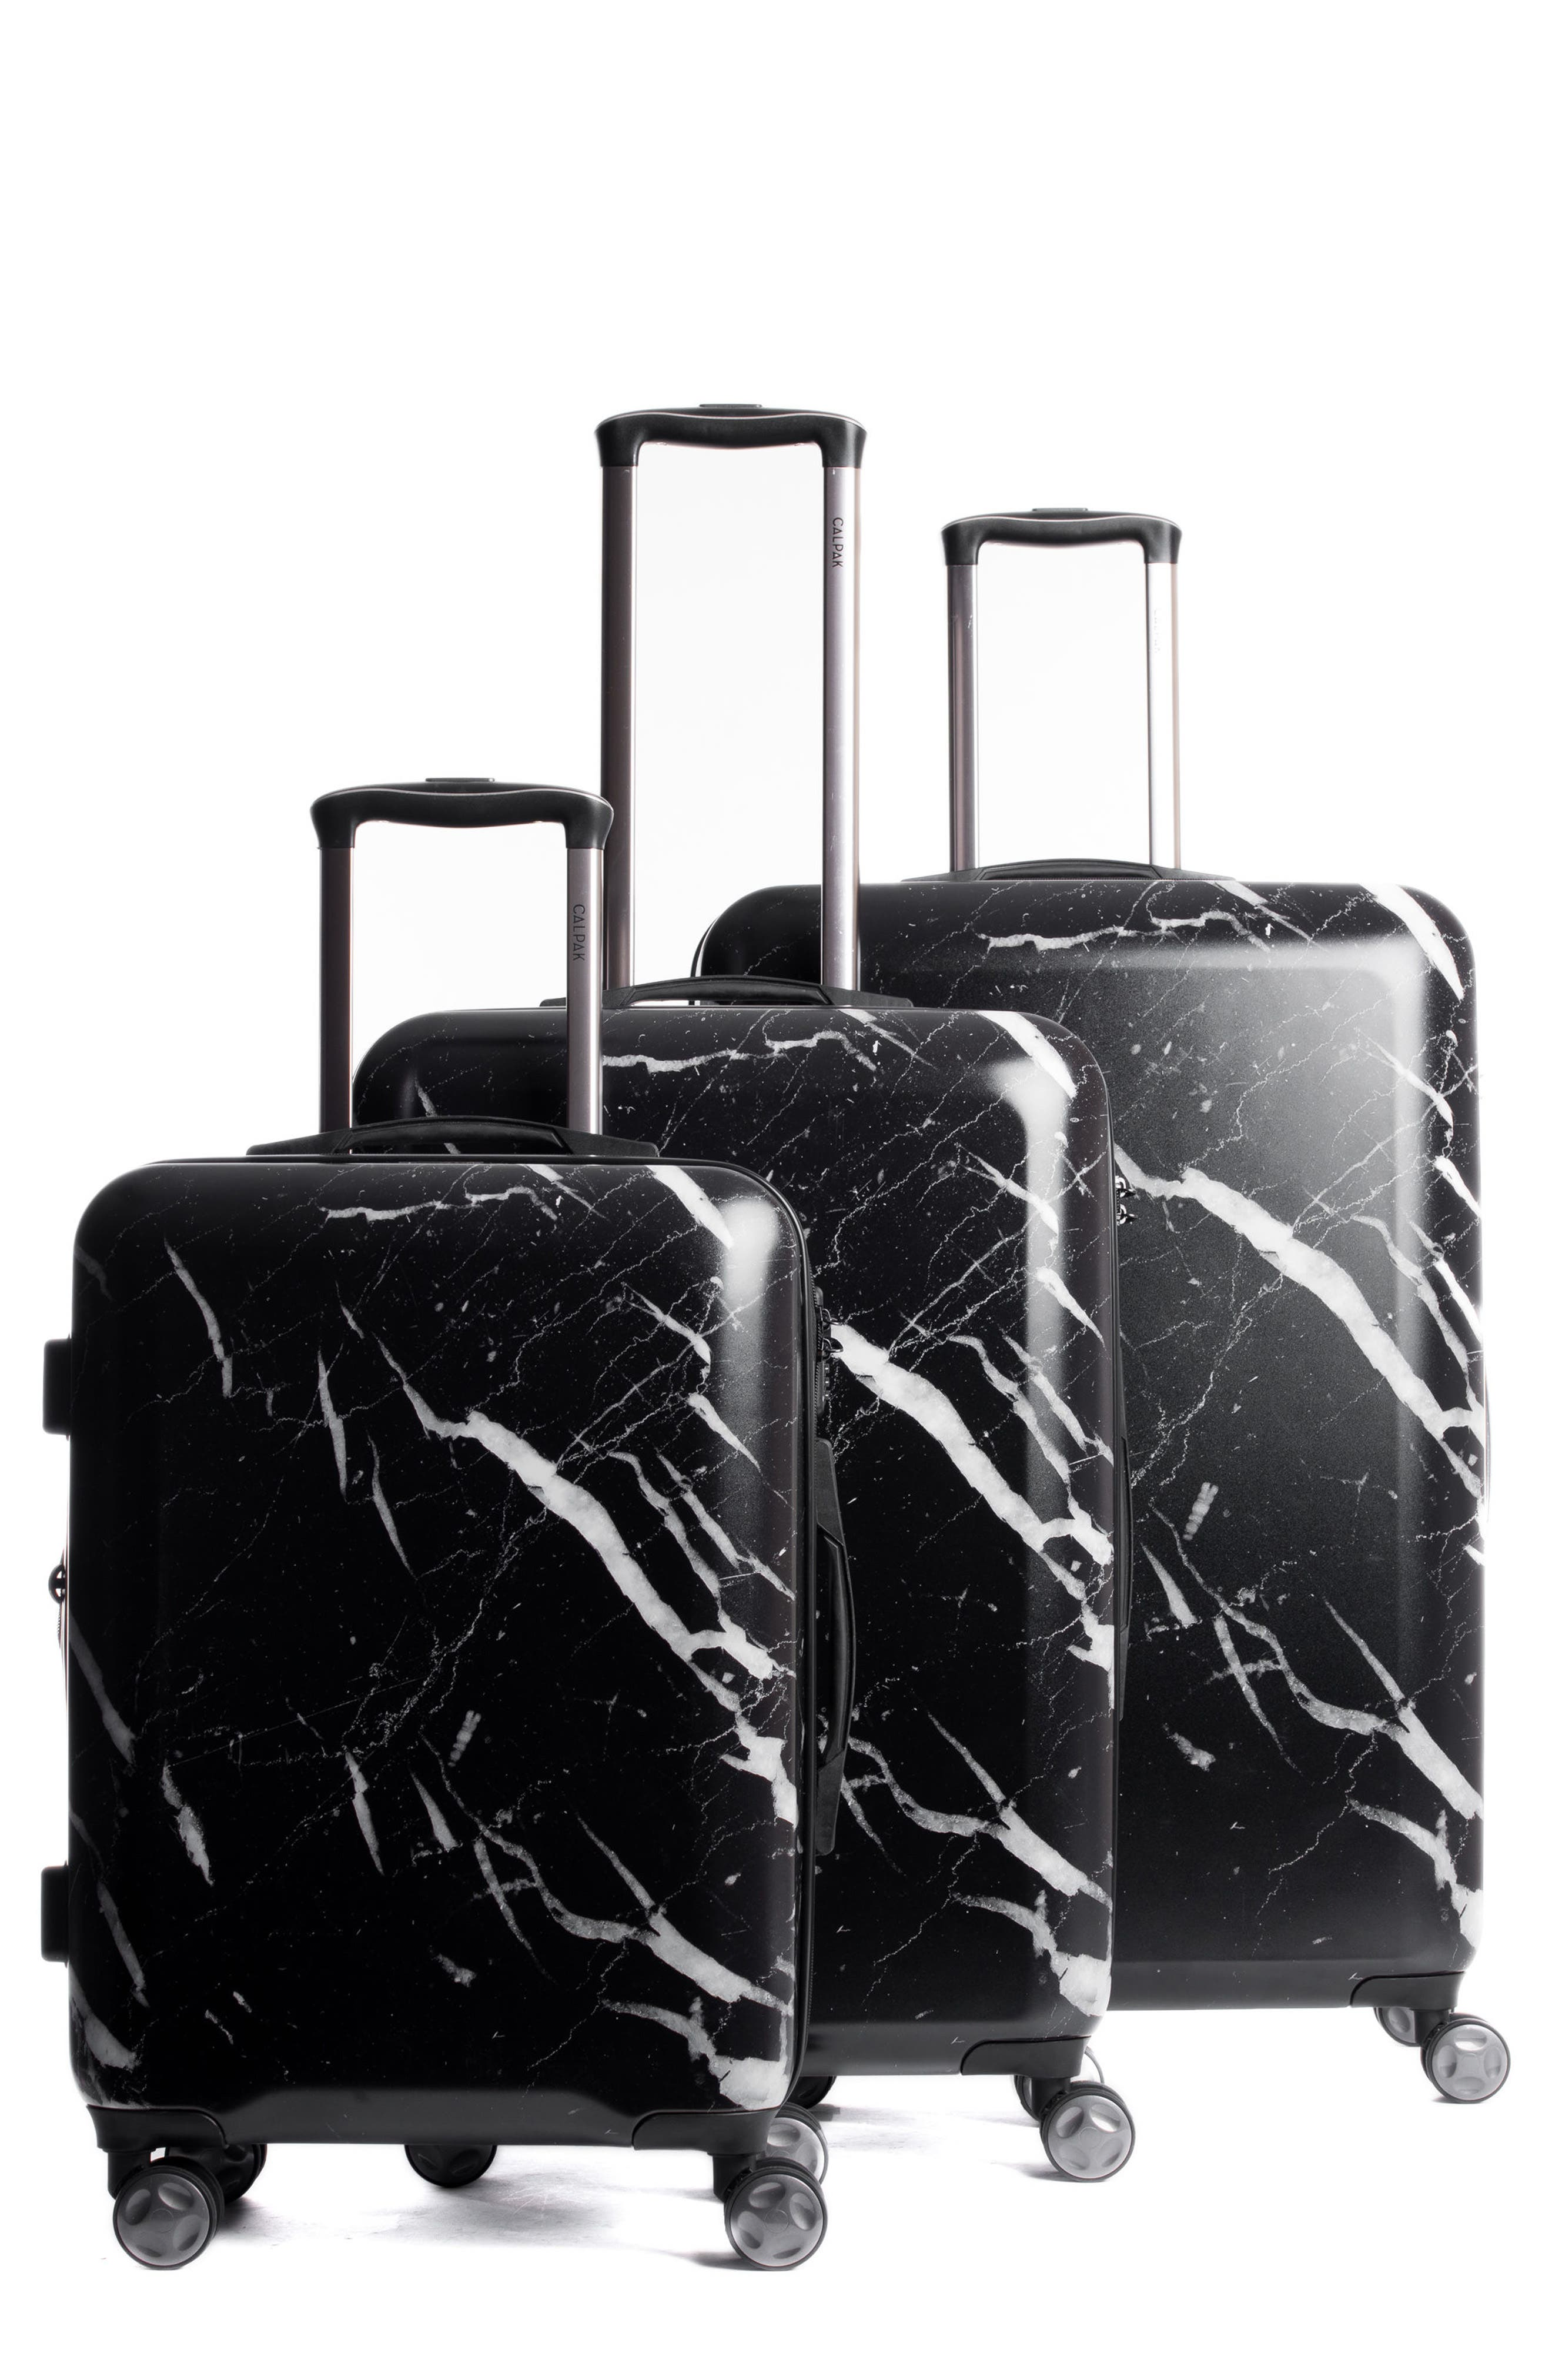 Astyll 3-Piece Marbled Luggage Set,                             Main thumbnail 1, color,                             BLACK